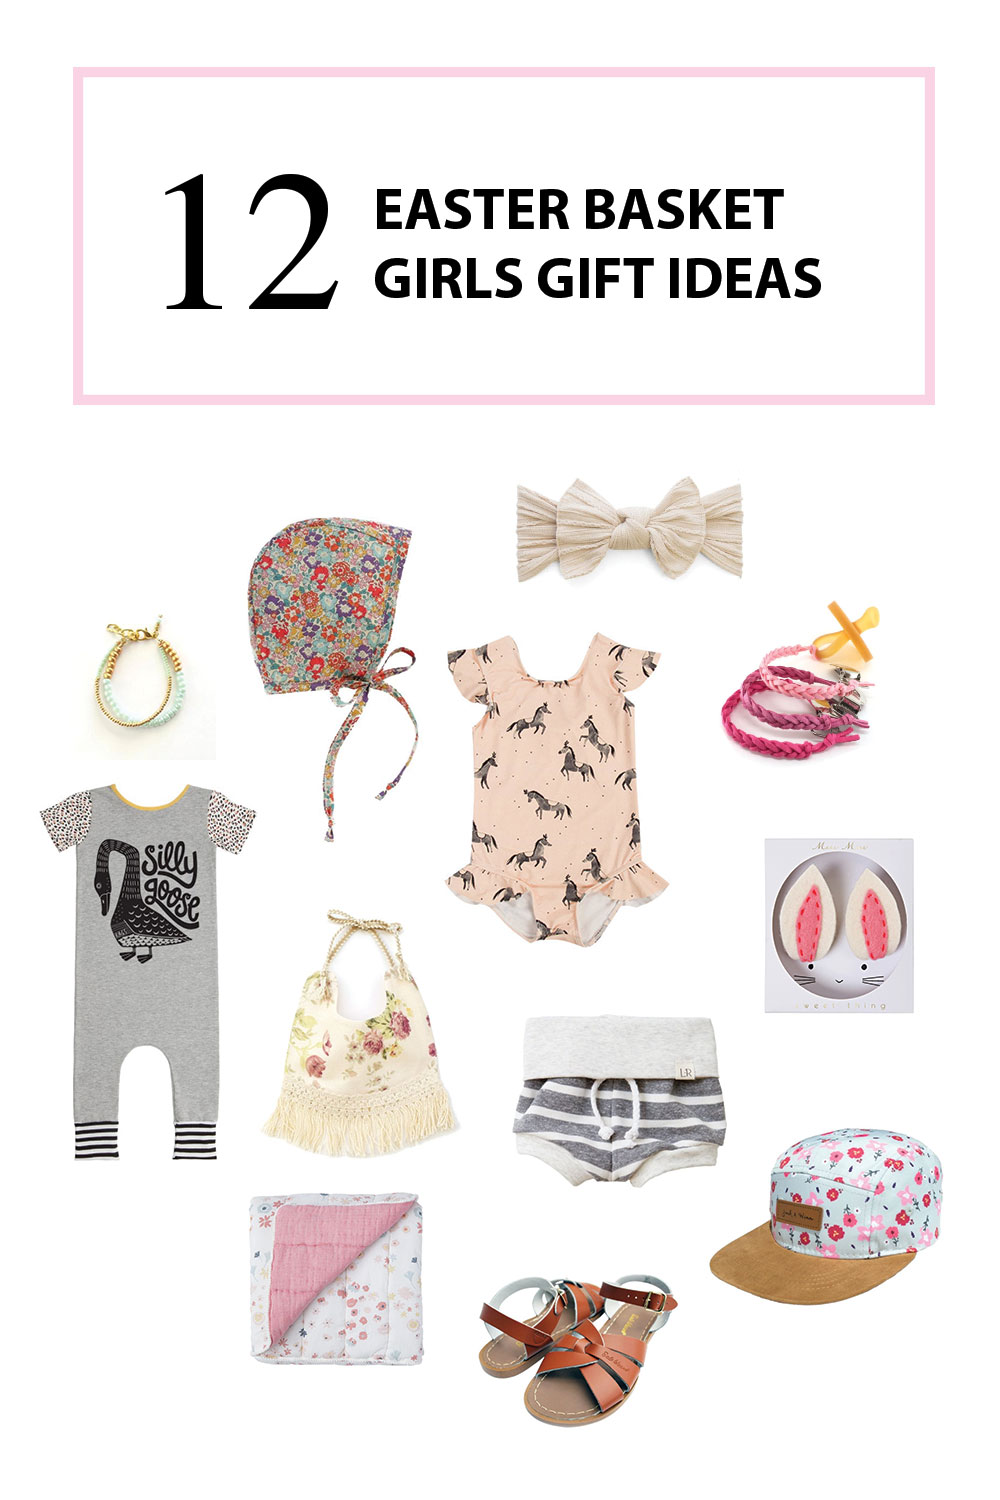 Boys and girls easter basket gift ideas the baby cubbycreative girls easter basket gift ideas the baby cubby negle Gallery